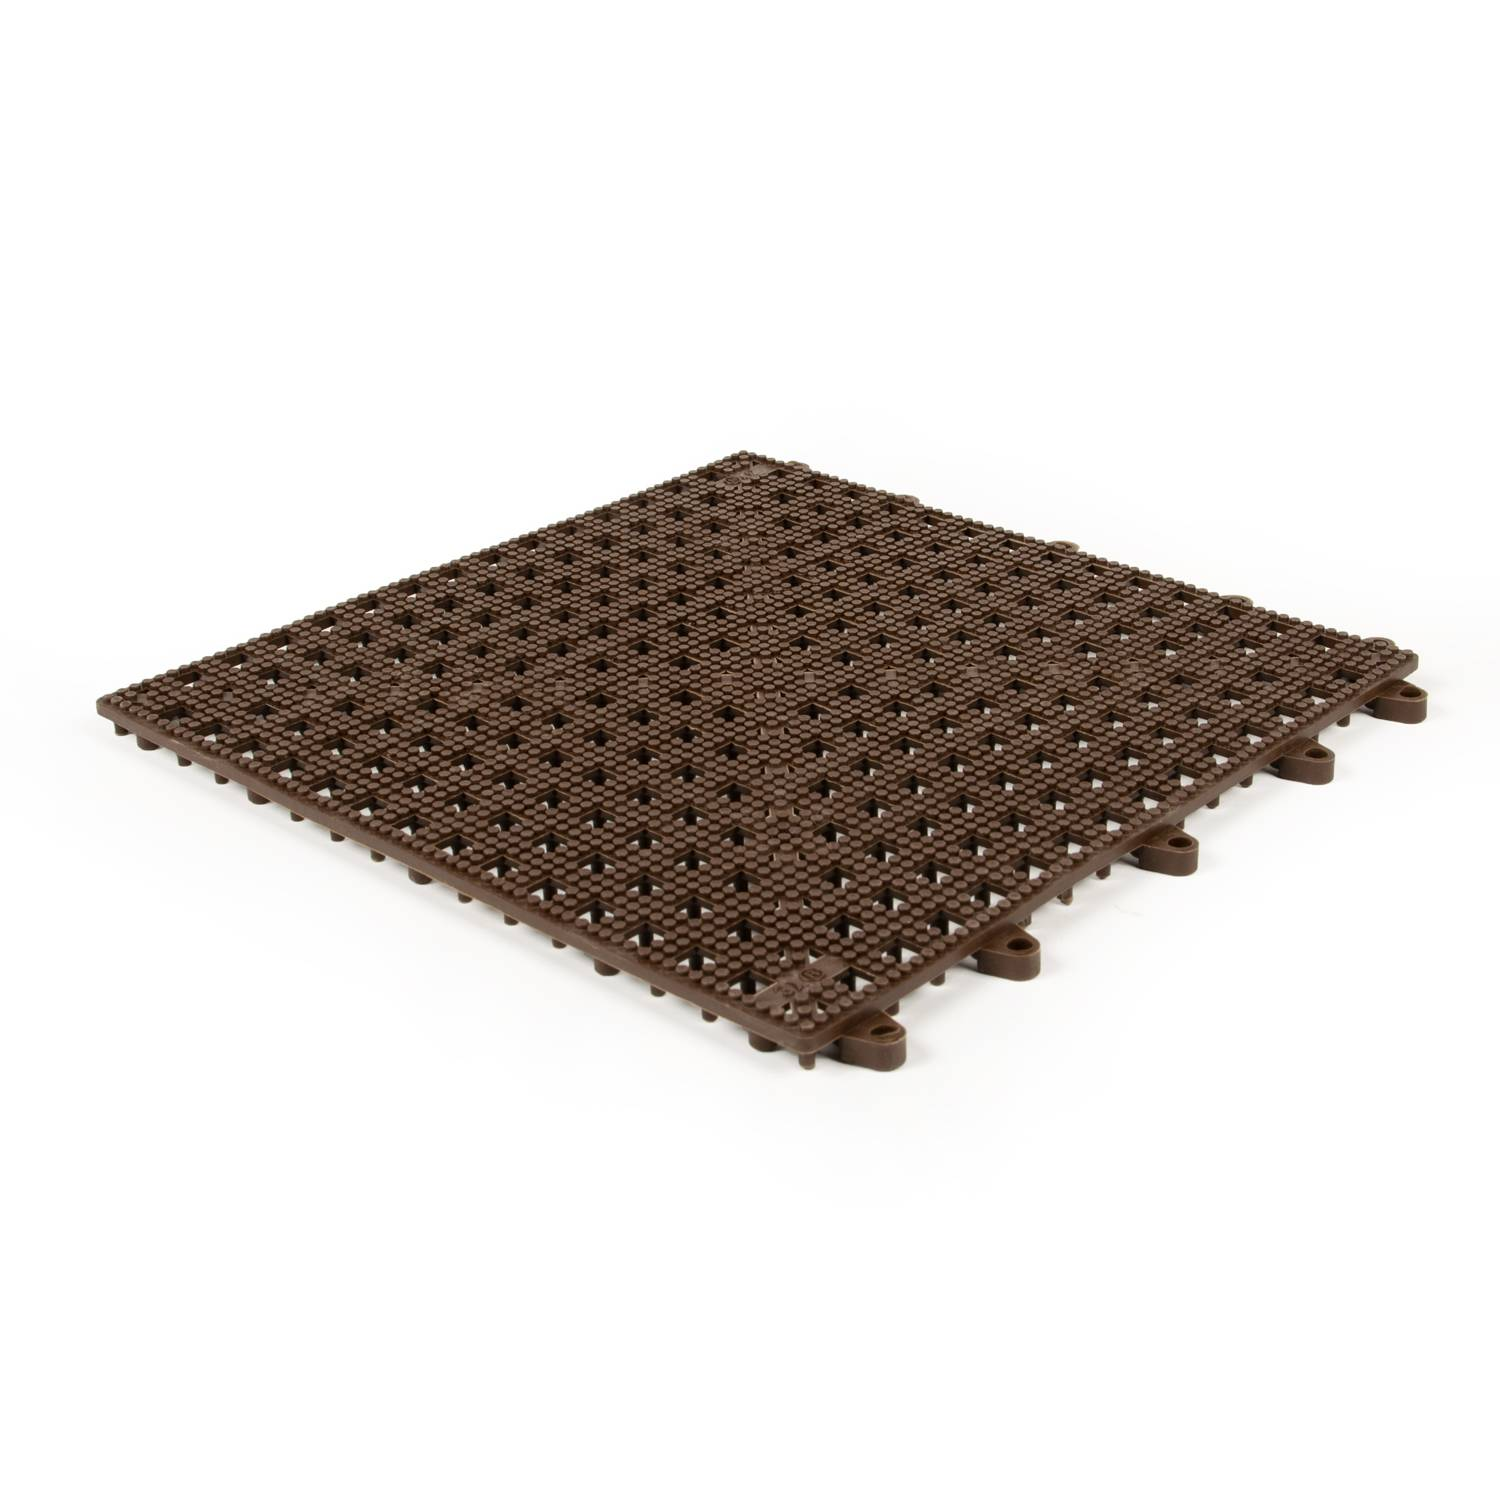 Planet Caoutchouc Dalle emboitable en grille marron 30x30cm - 10mm